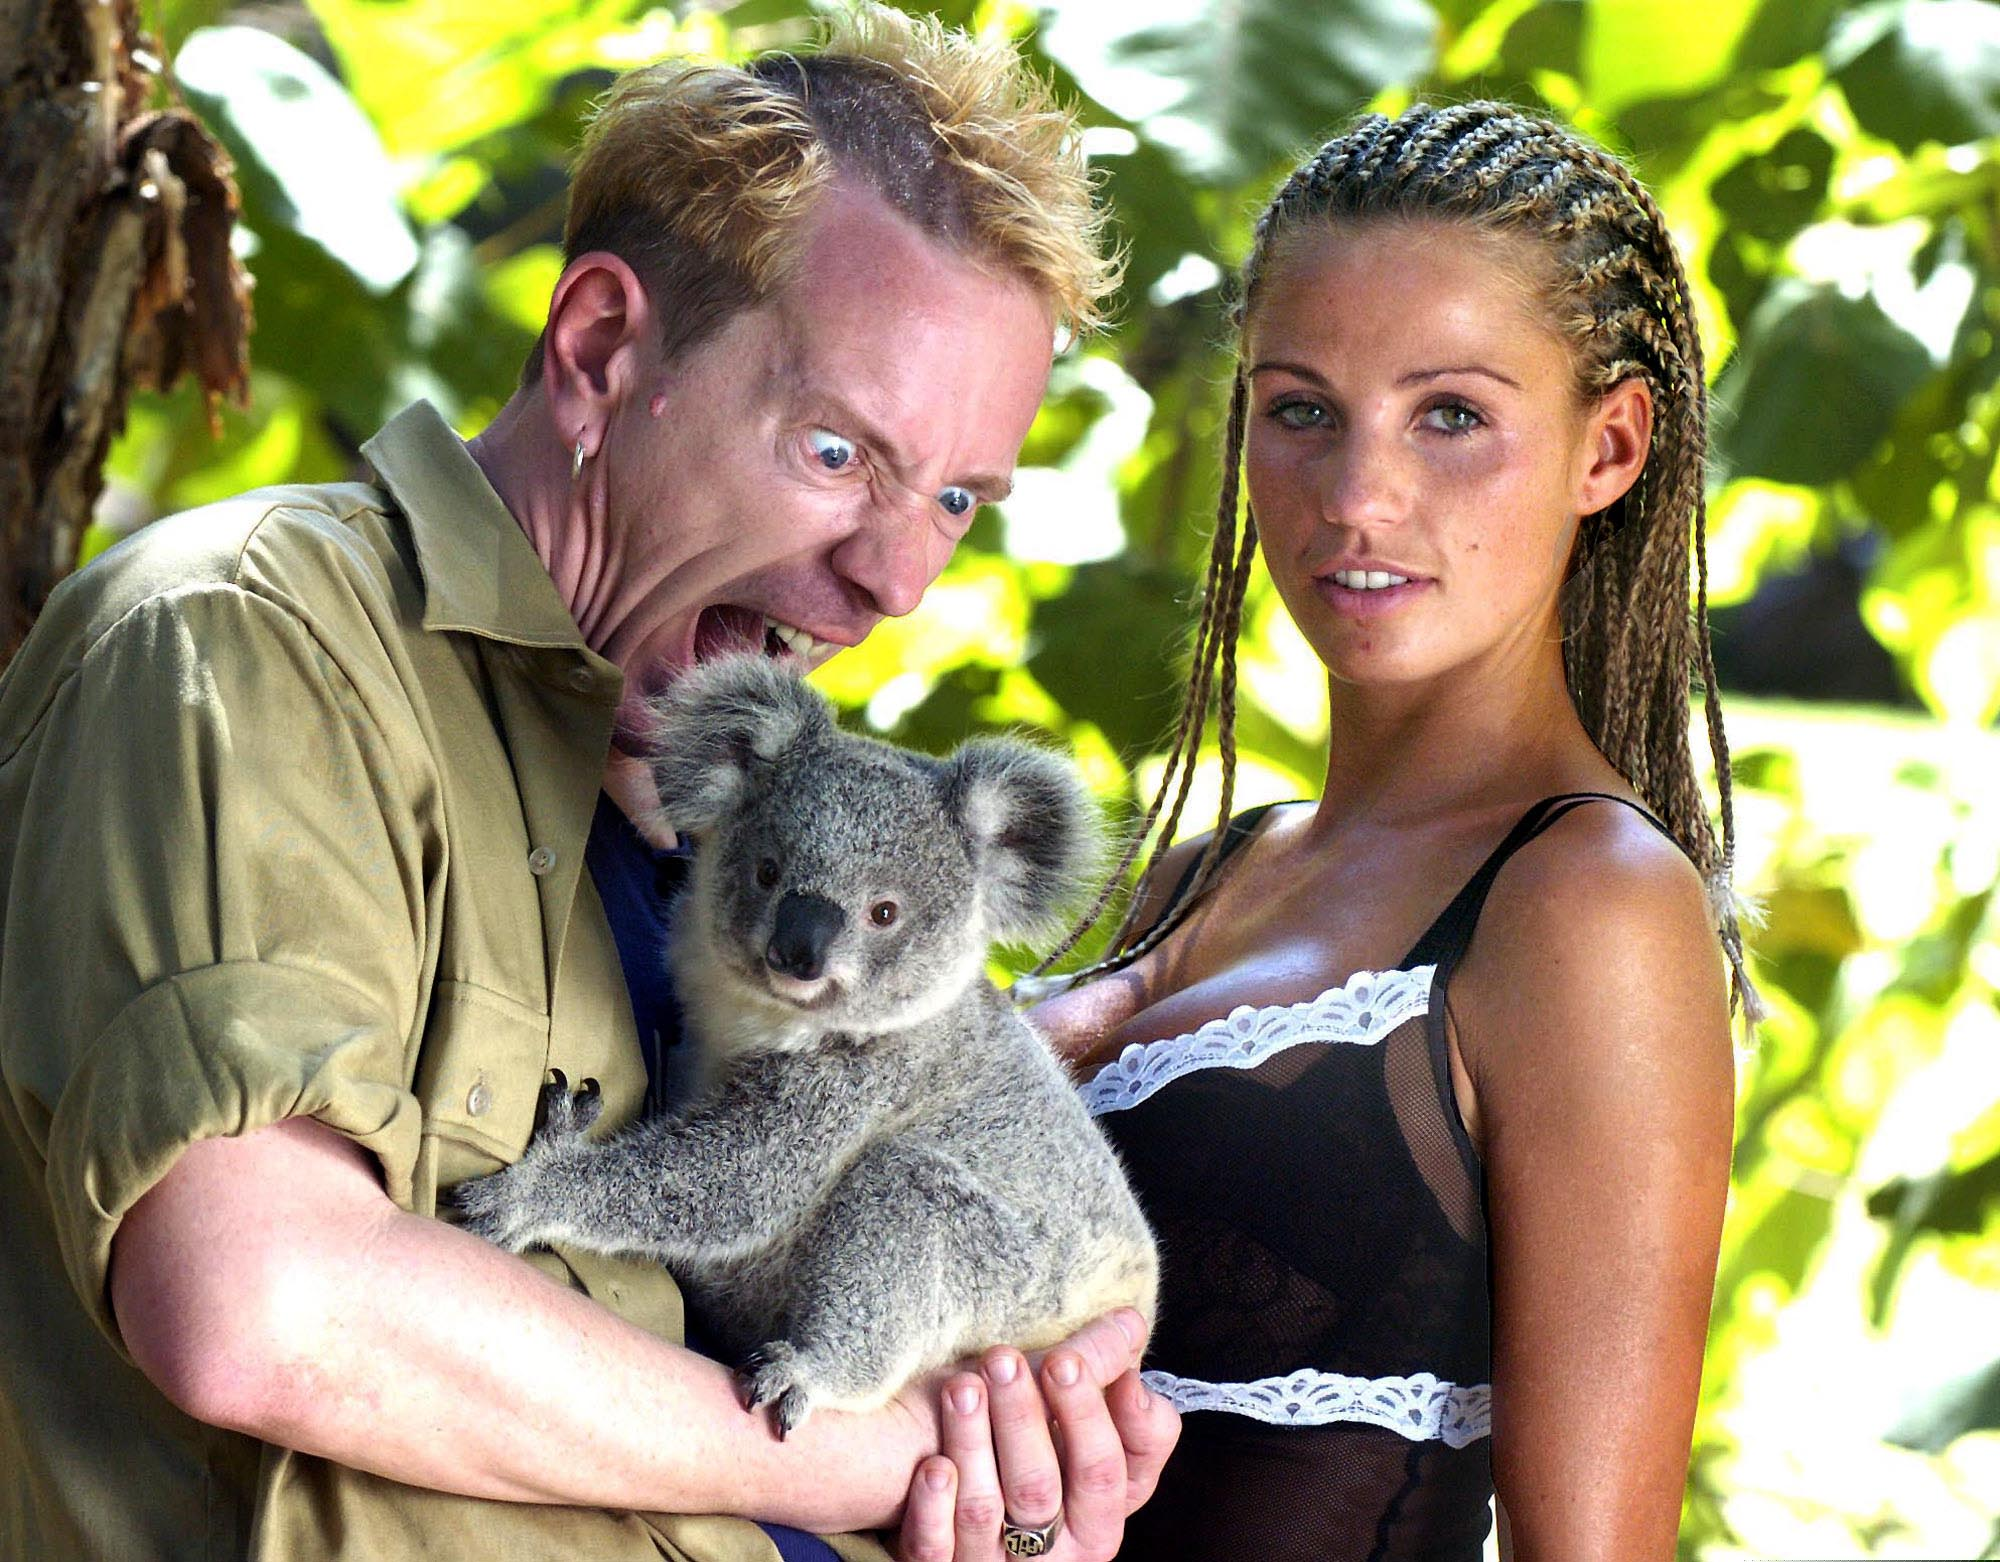 """British celebrities model Katie Price aka Jordan, right,  and Johnny """"Rotten"""" Lydon of the Sex Pistols get acquainted with a Koala at a wildlife park on the Gold Coast, Australia, Sunday, Jan. 25, 2004. The pair are competing with eight other celebrities in the British television program """"I'm a Celebrity ... Get Me Out Of Here ! """" which begins today in the Australian jungle near Murwillumbah, 200 kilometers (124 miles) south of Brisbane on Australia's east coast. Each celebrity will be voted for by the British public with the winner announced in the final show on Feb. 9. (AP Photo/Brian Cassey)"""